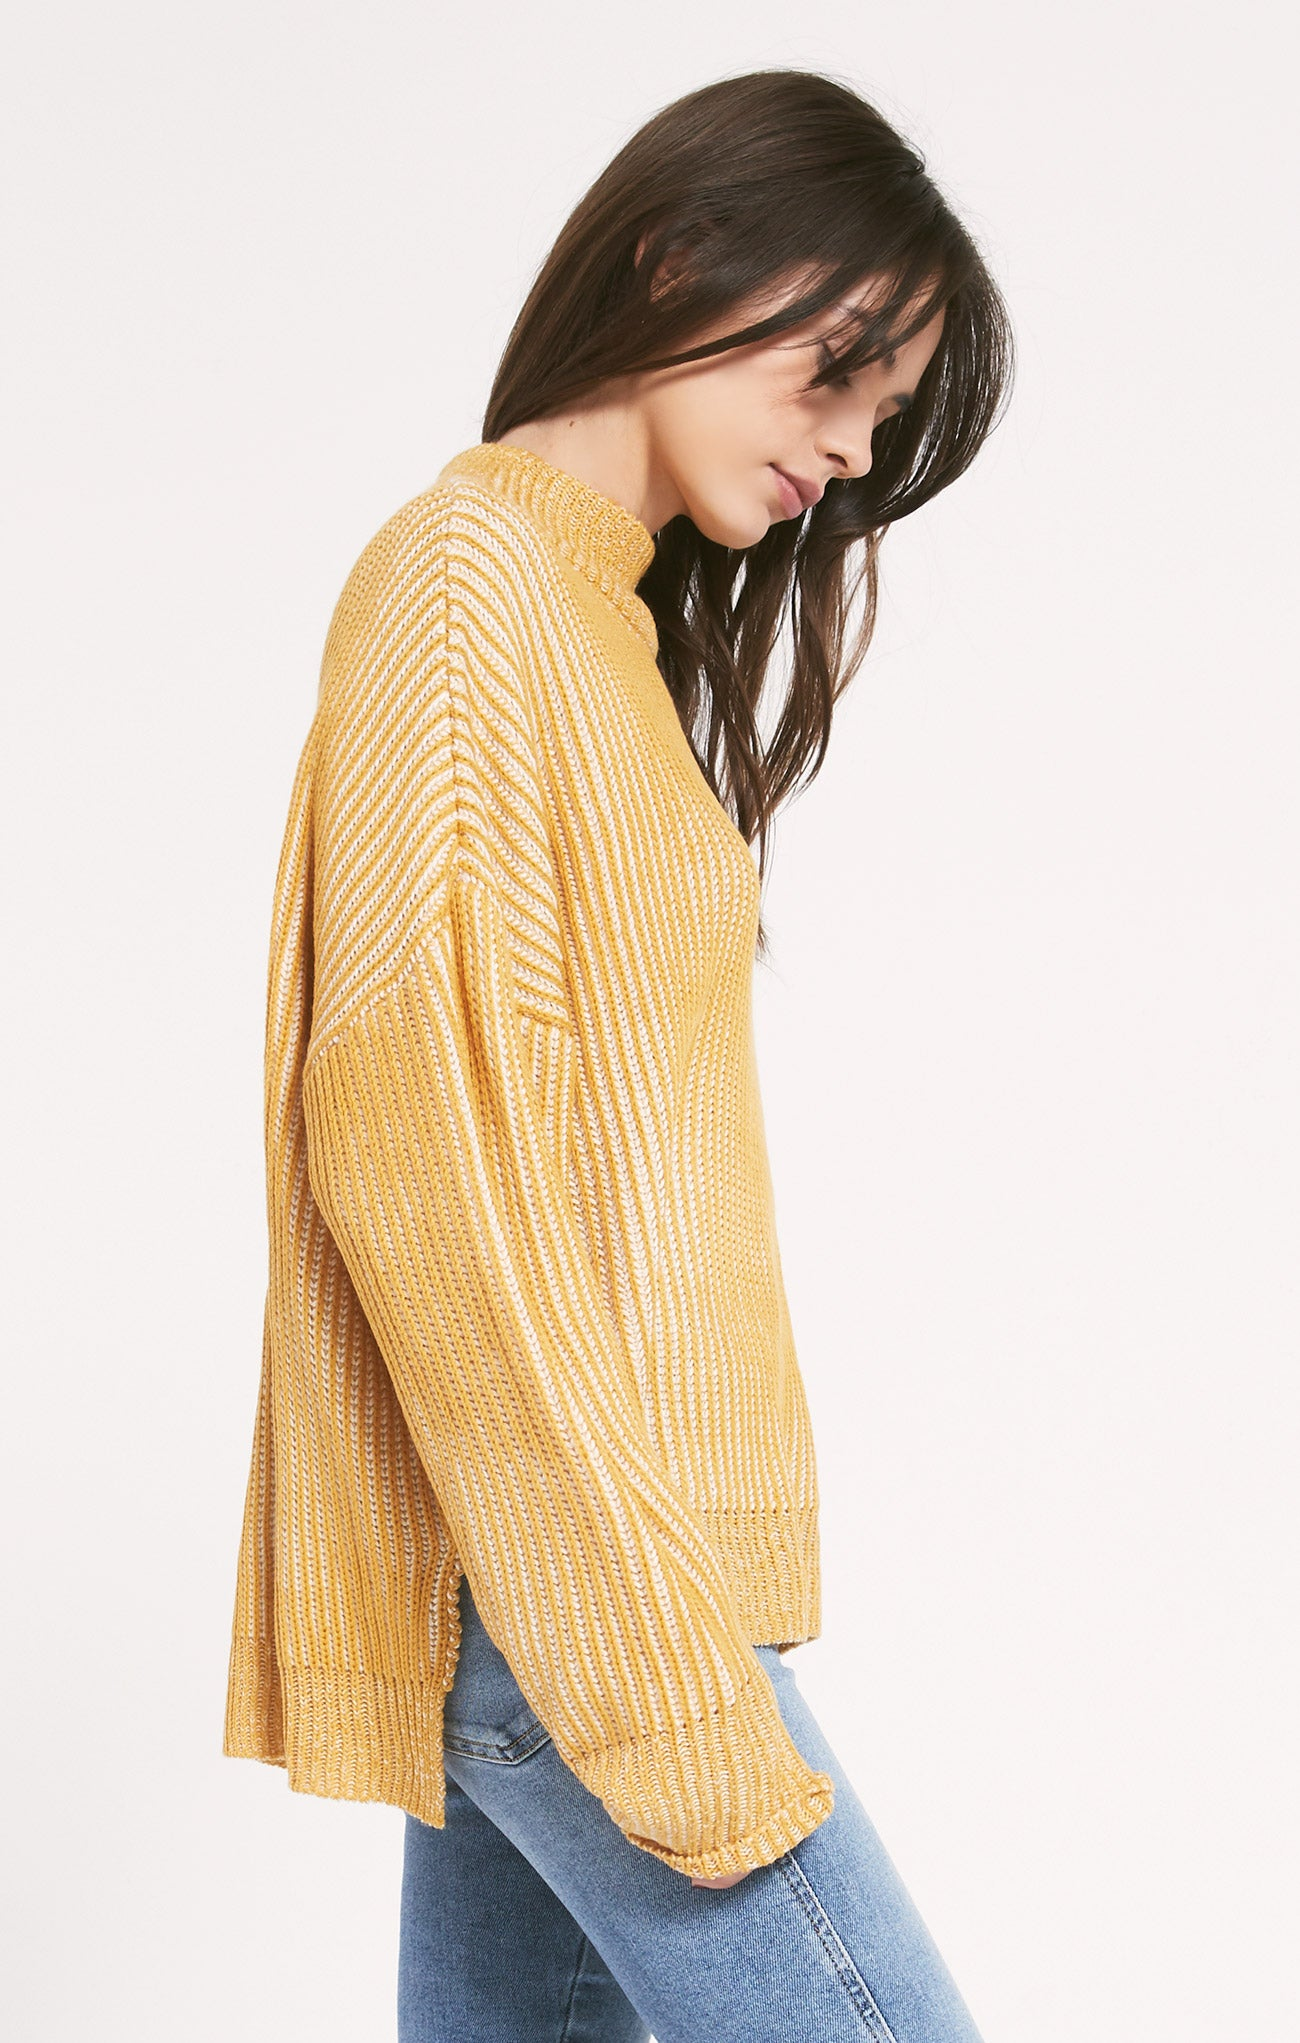 Sweaters Irwin Sweater by Rag Poets Honey